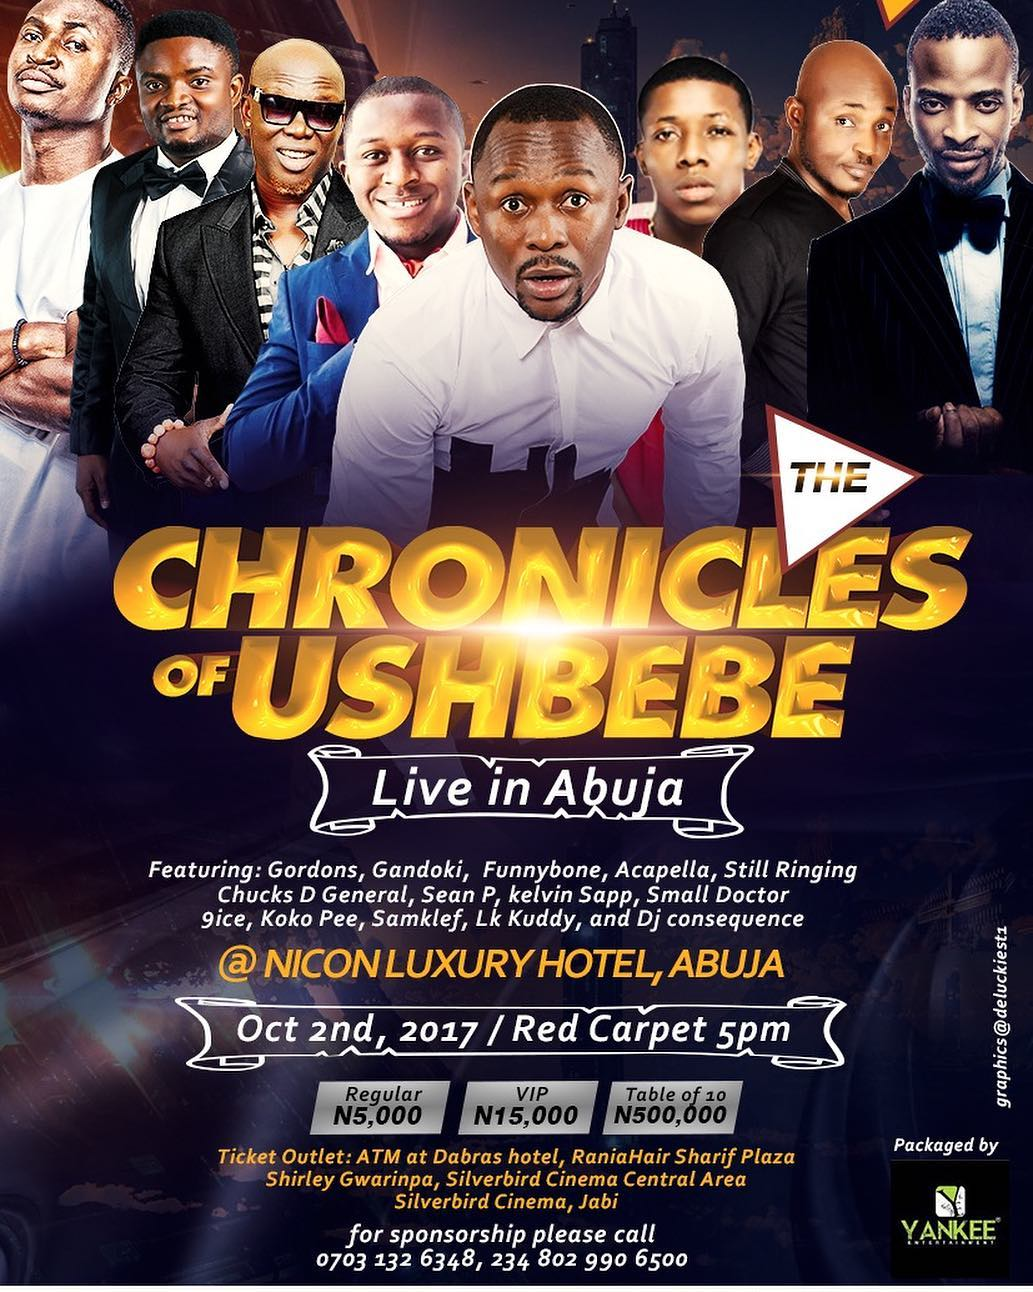 Chronicles Of Ushbebe: Live In Abuja